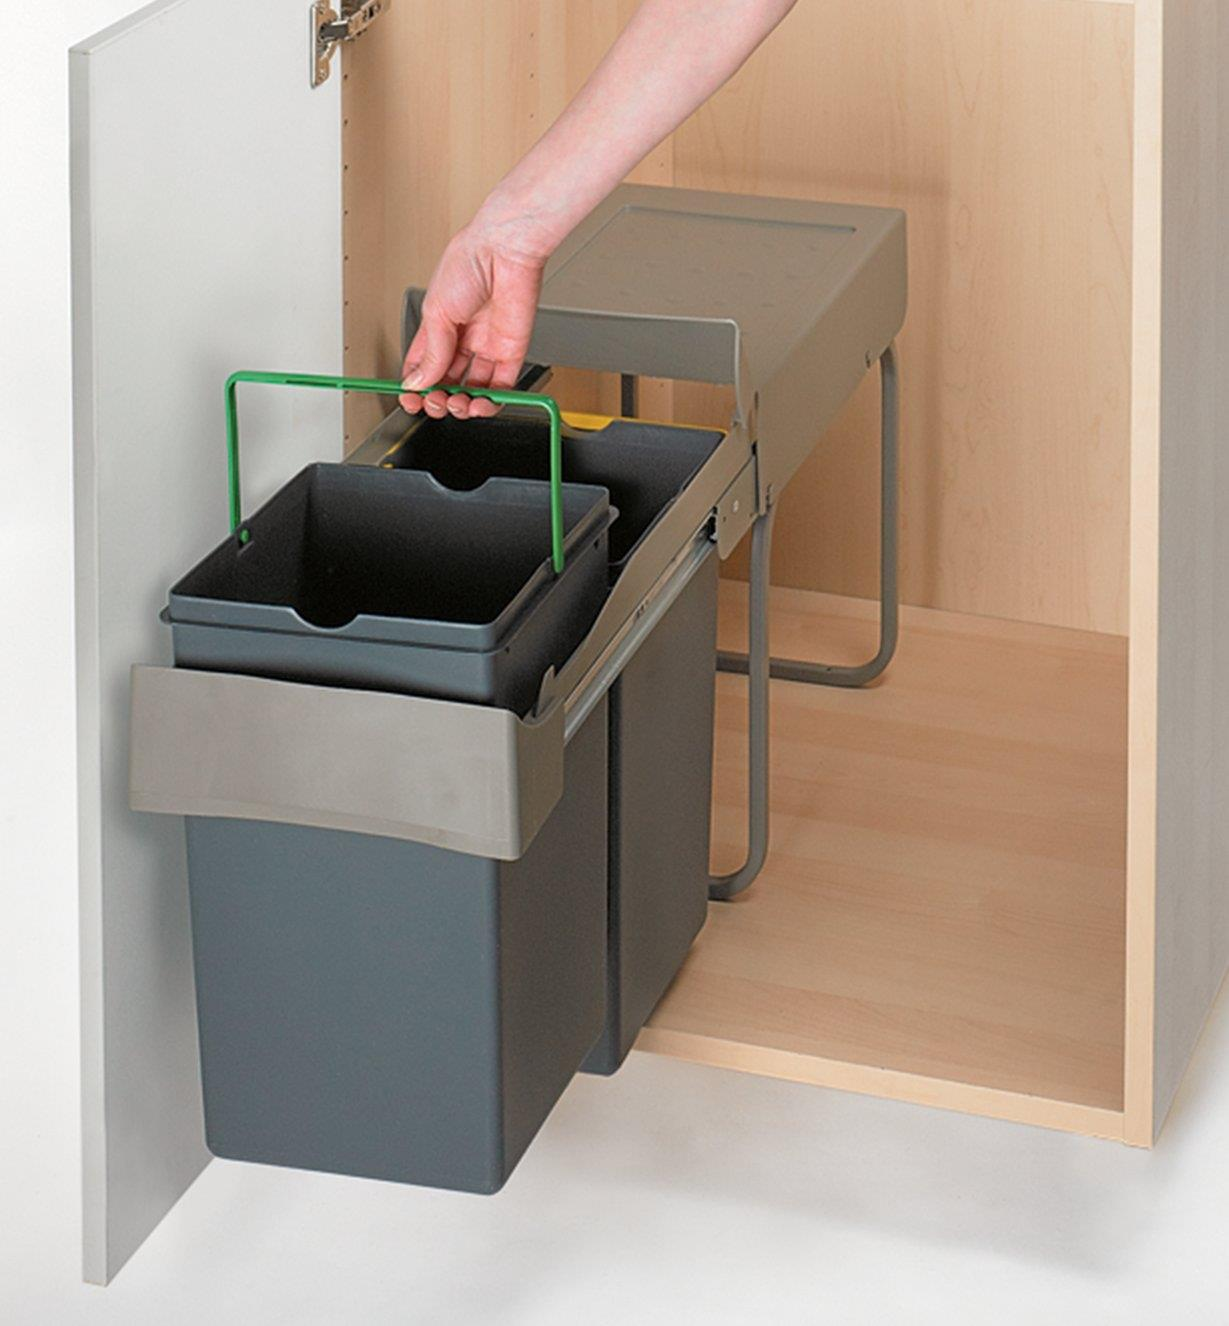 Lifting out one of the bin inserts by the handles